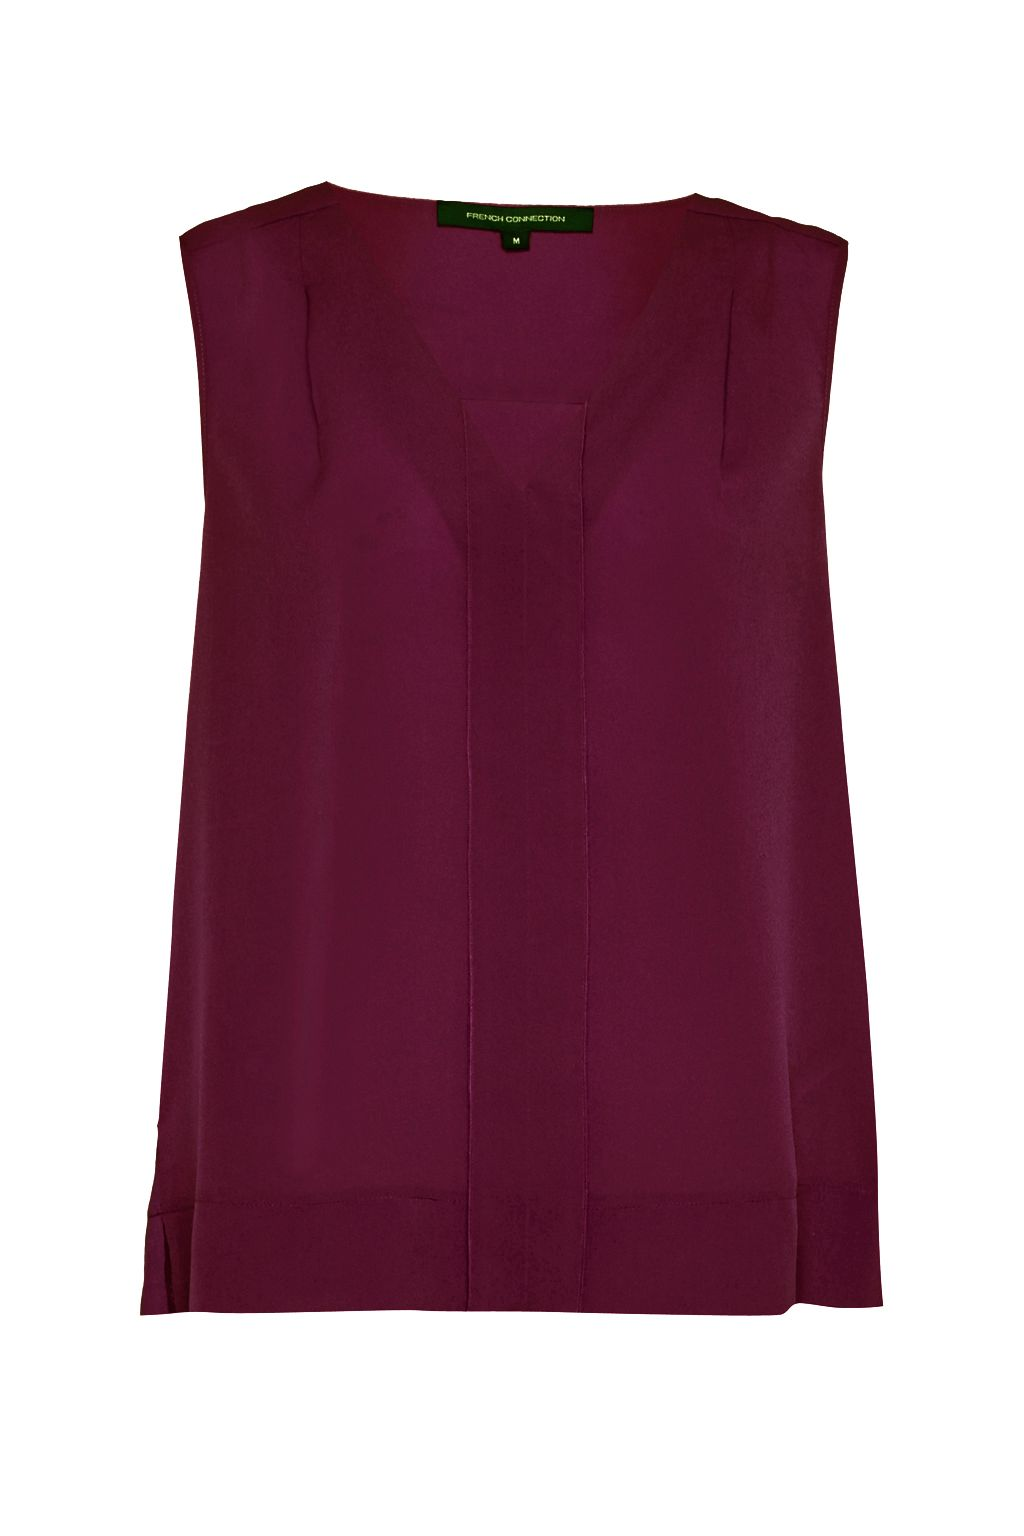 French Connection Polly Plains V Neck Top, Dark Purple